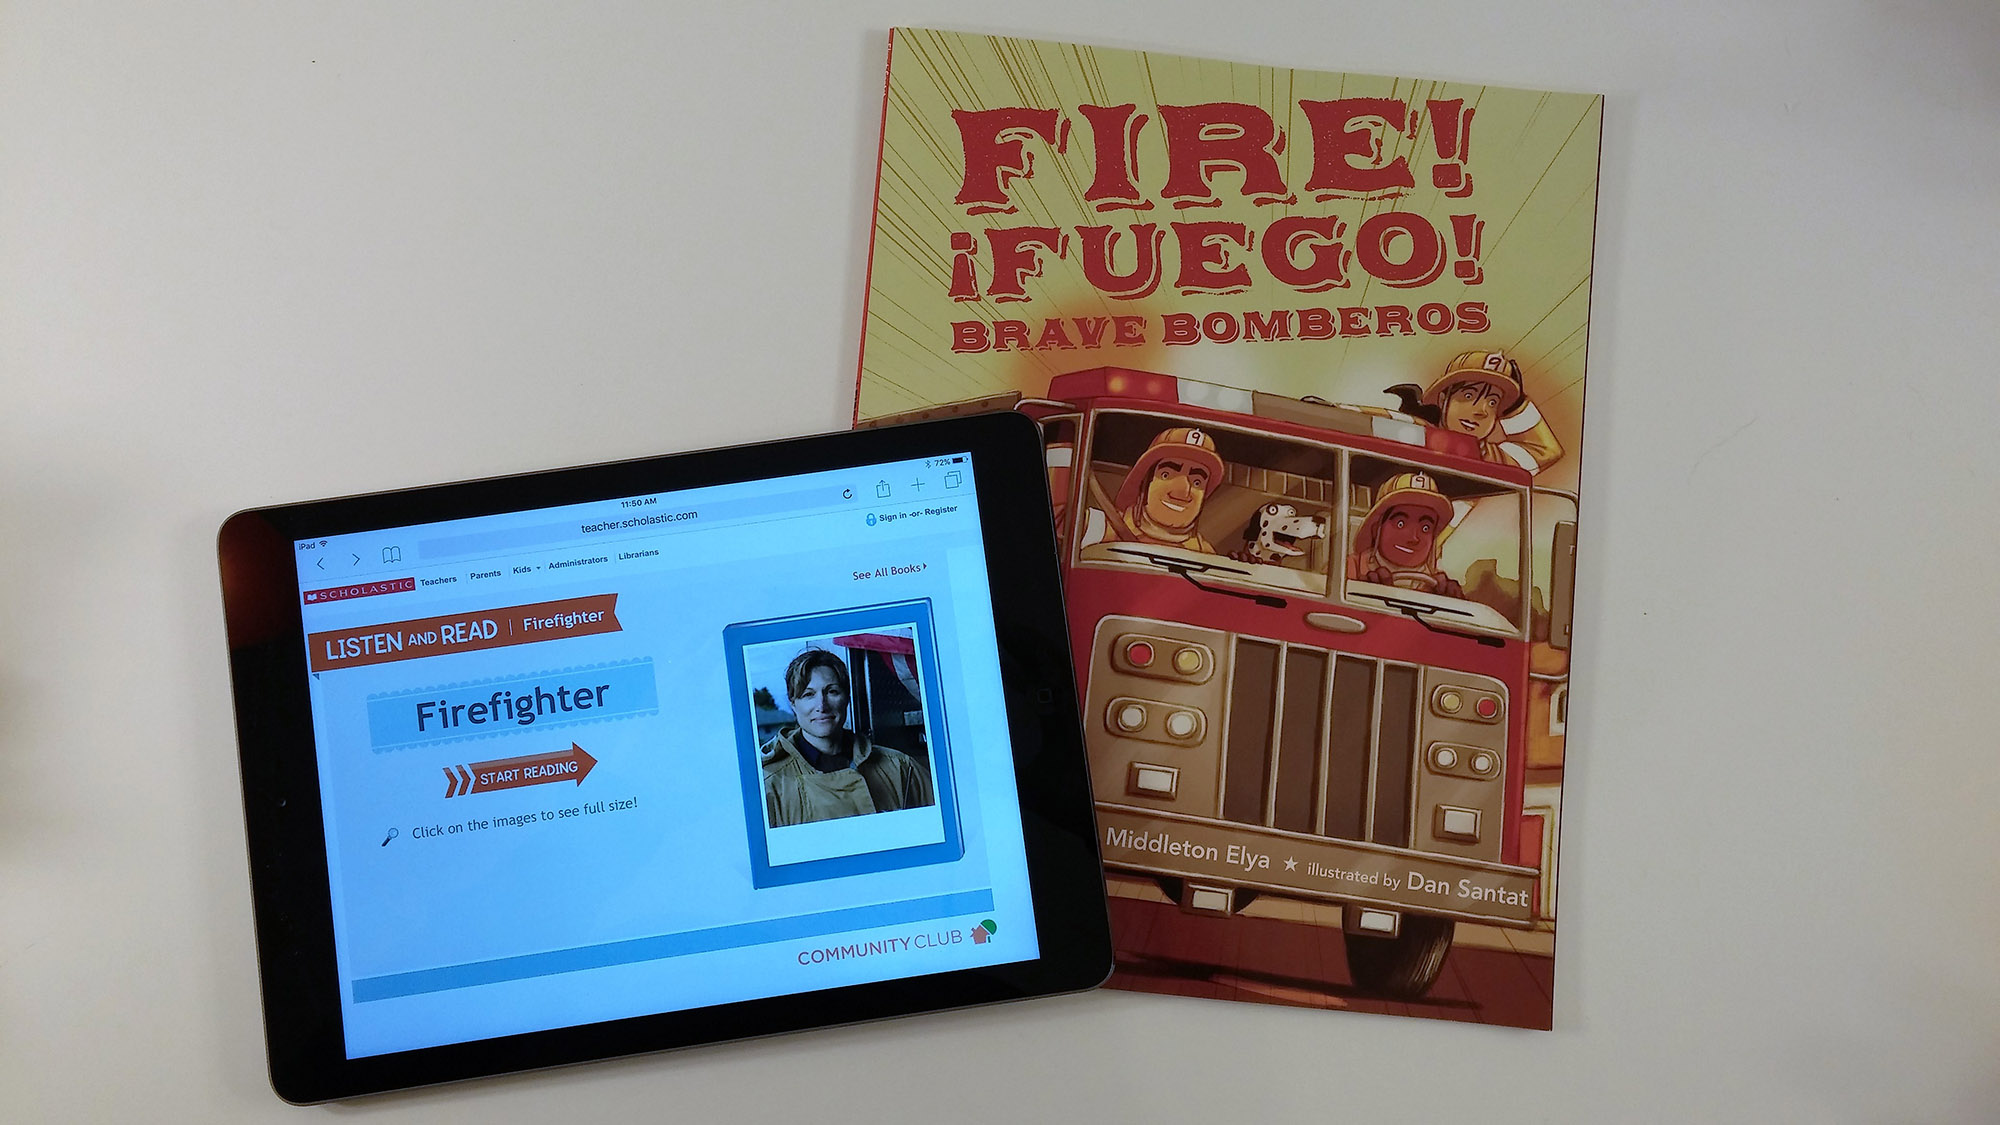 "Read Scholastic's Community Club ""Meet a Firefighter"" as a follow-up to the book Fire! Fuego! Brave Bomberos"